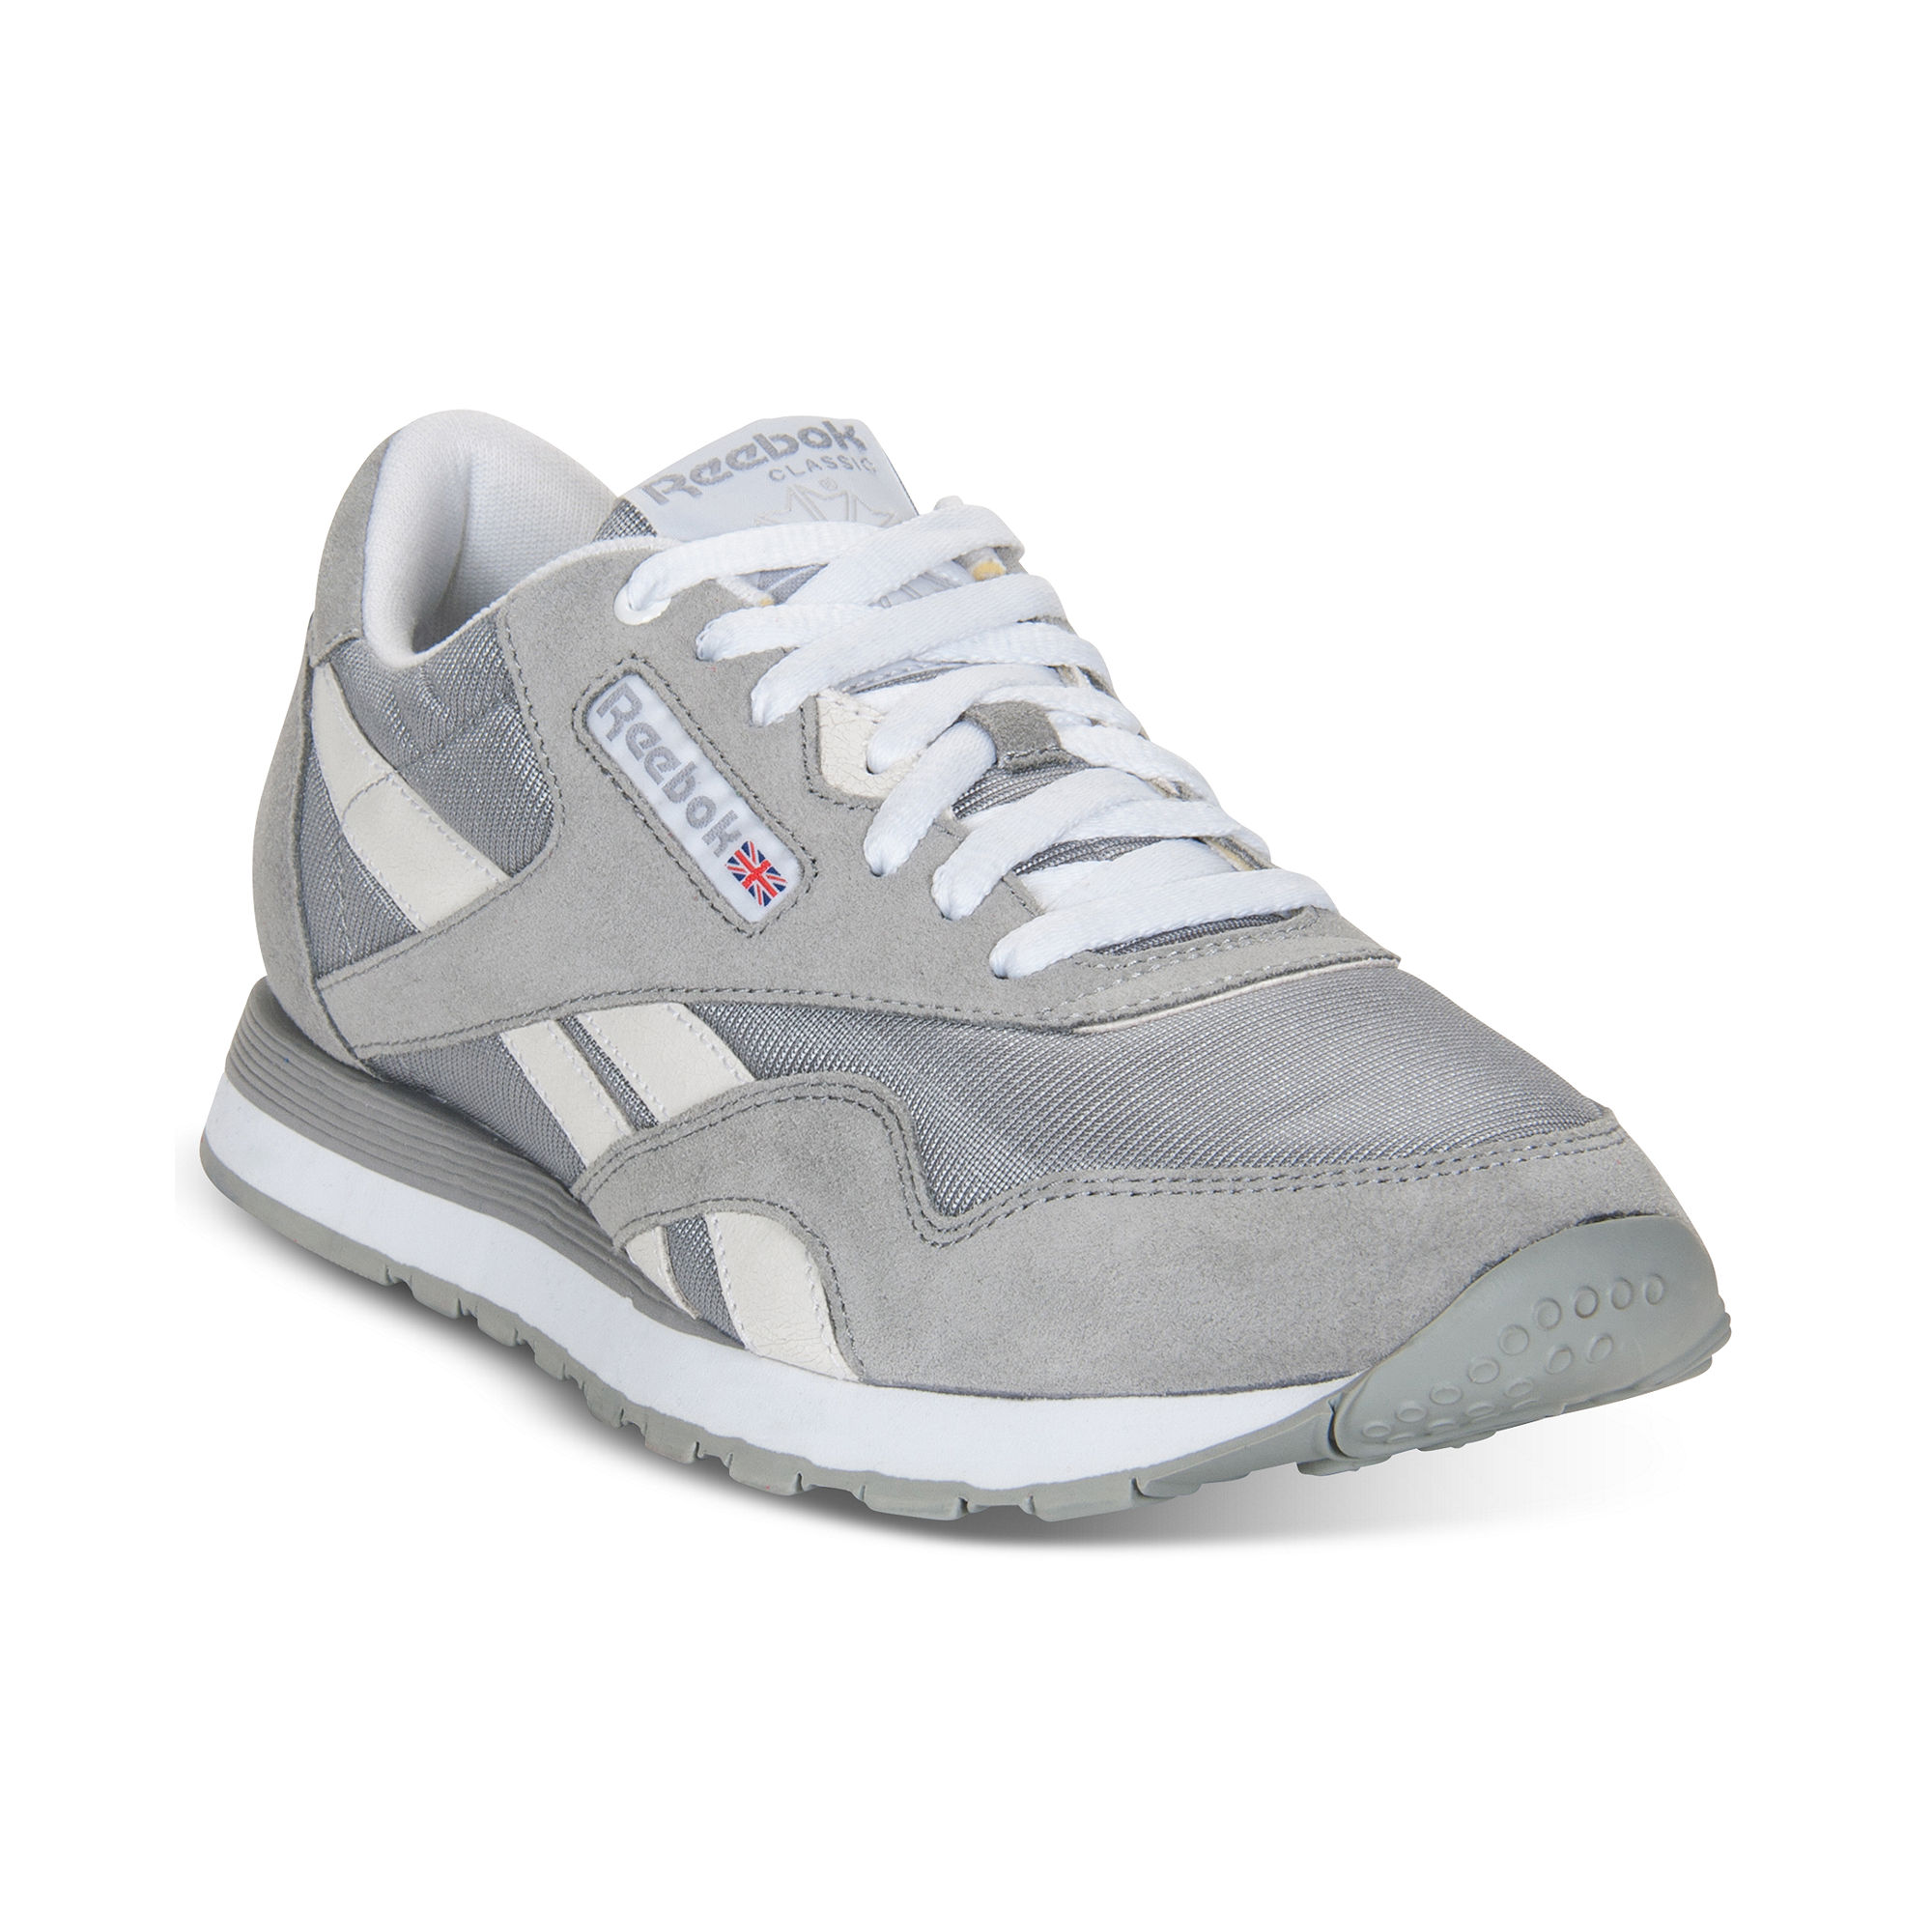 Athletic Shoes For Casual Wear